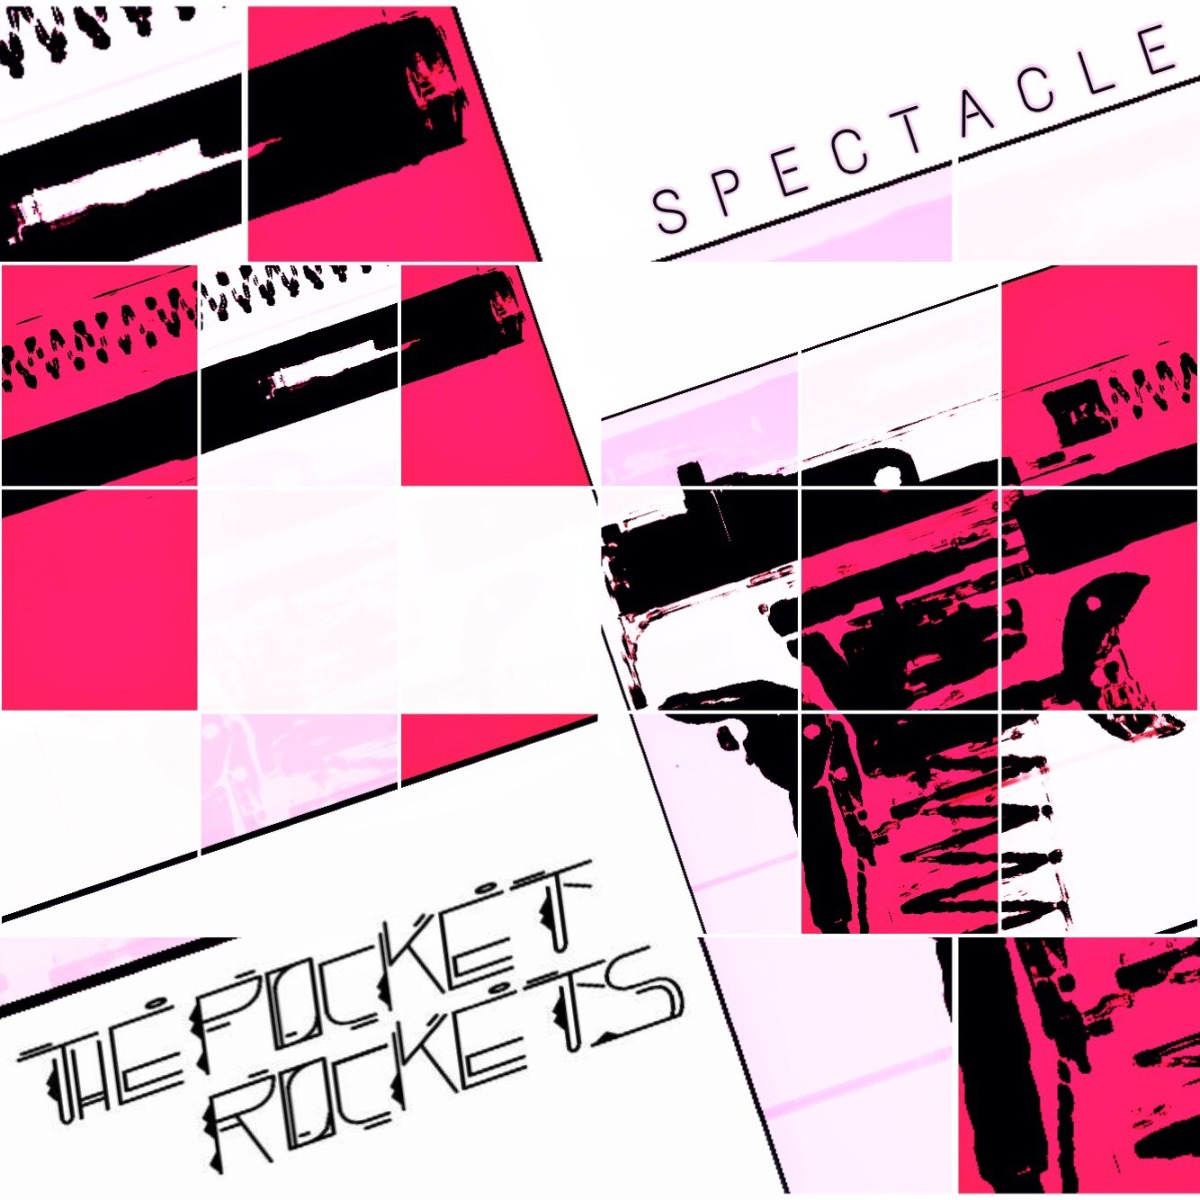 The Pocket Rockets 'SPECTACLE'